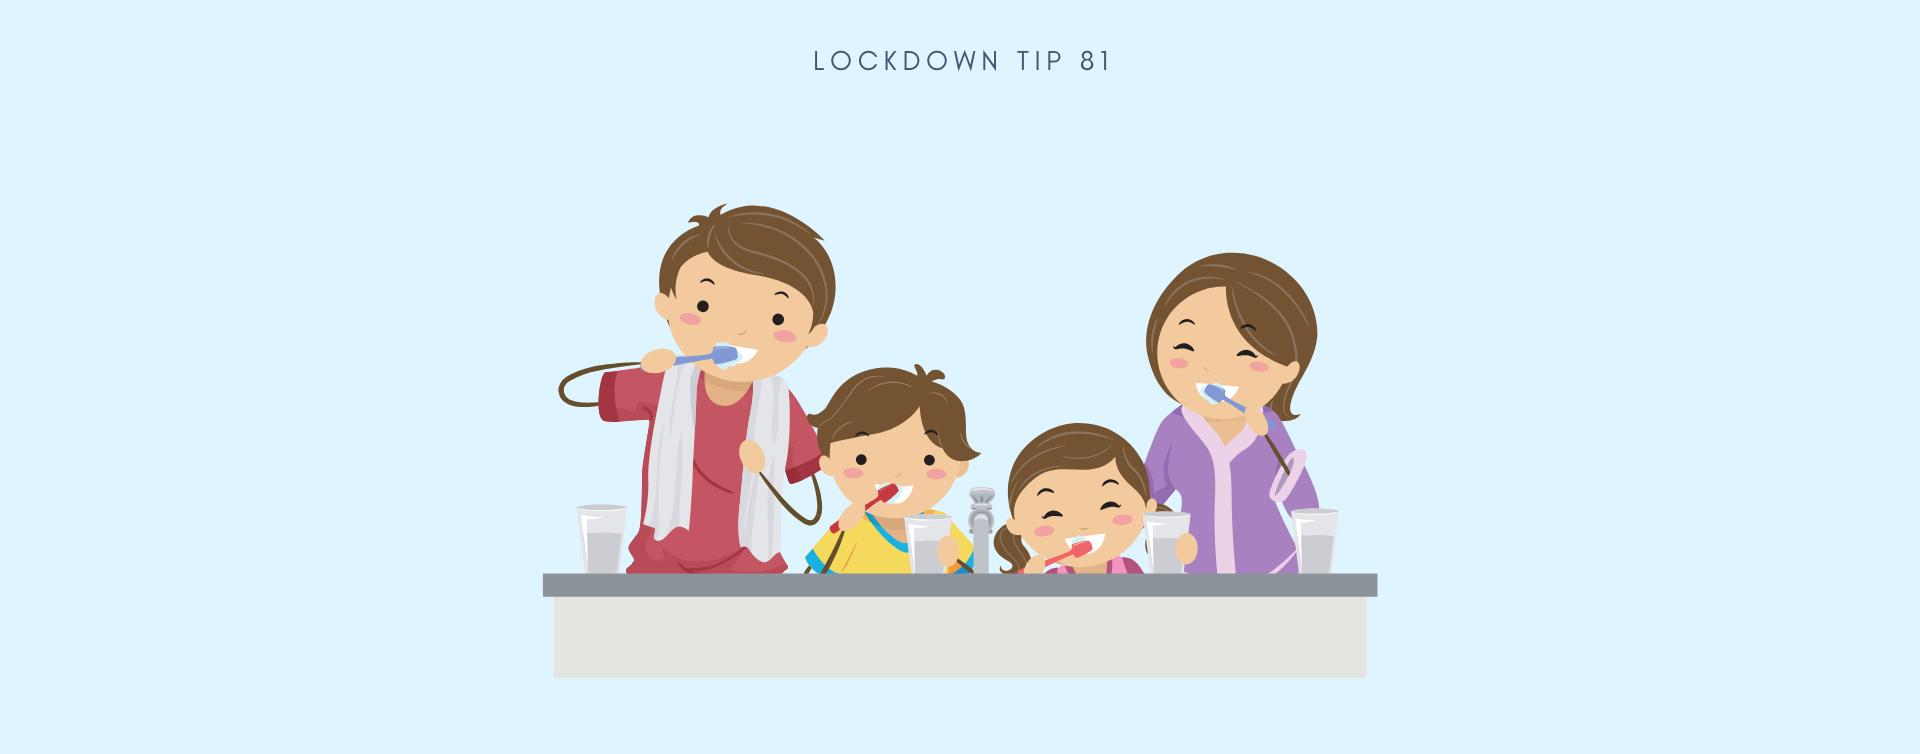 MCSA Lockdown Tip 81